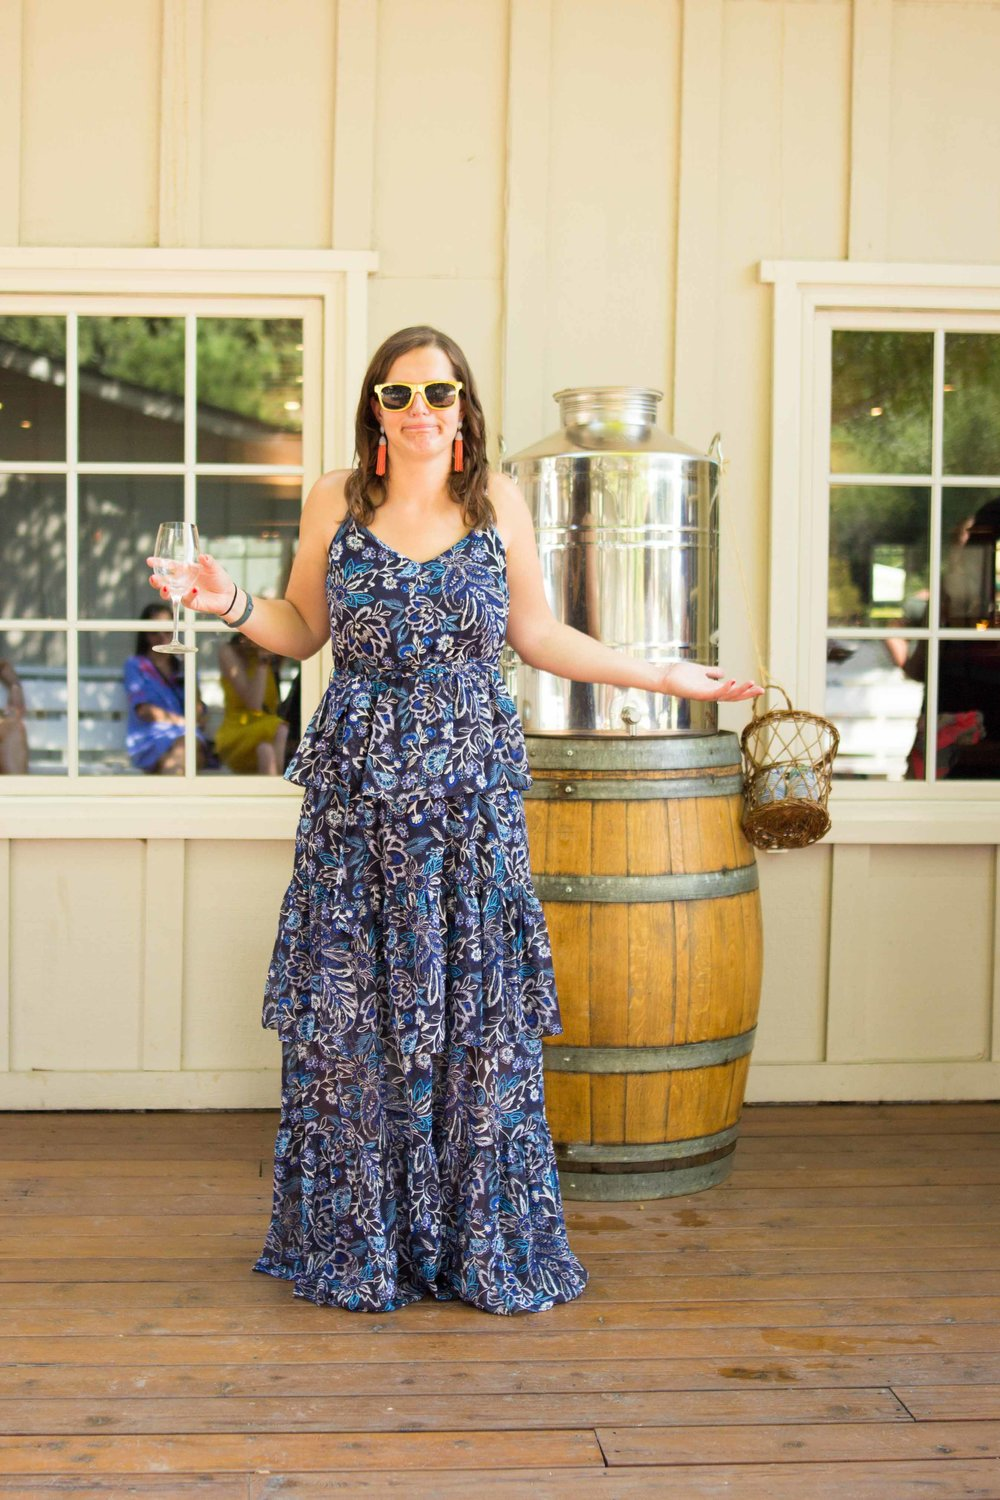 When the water barrel is empty